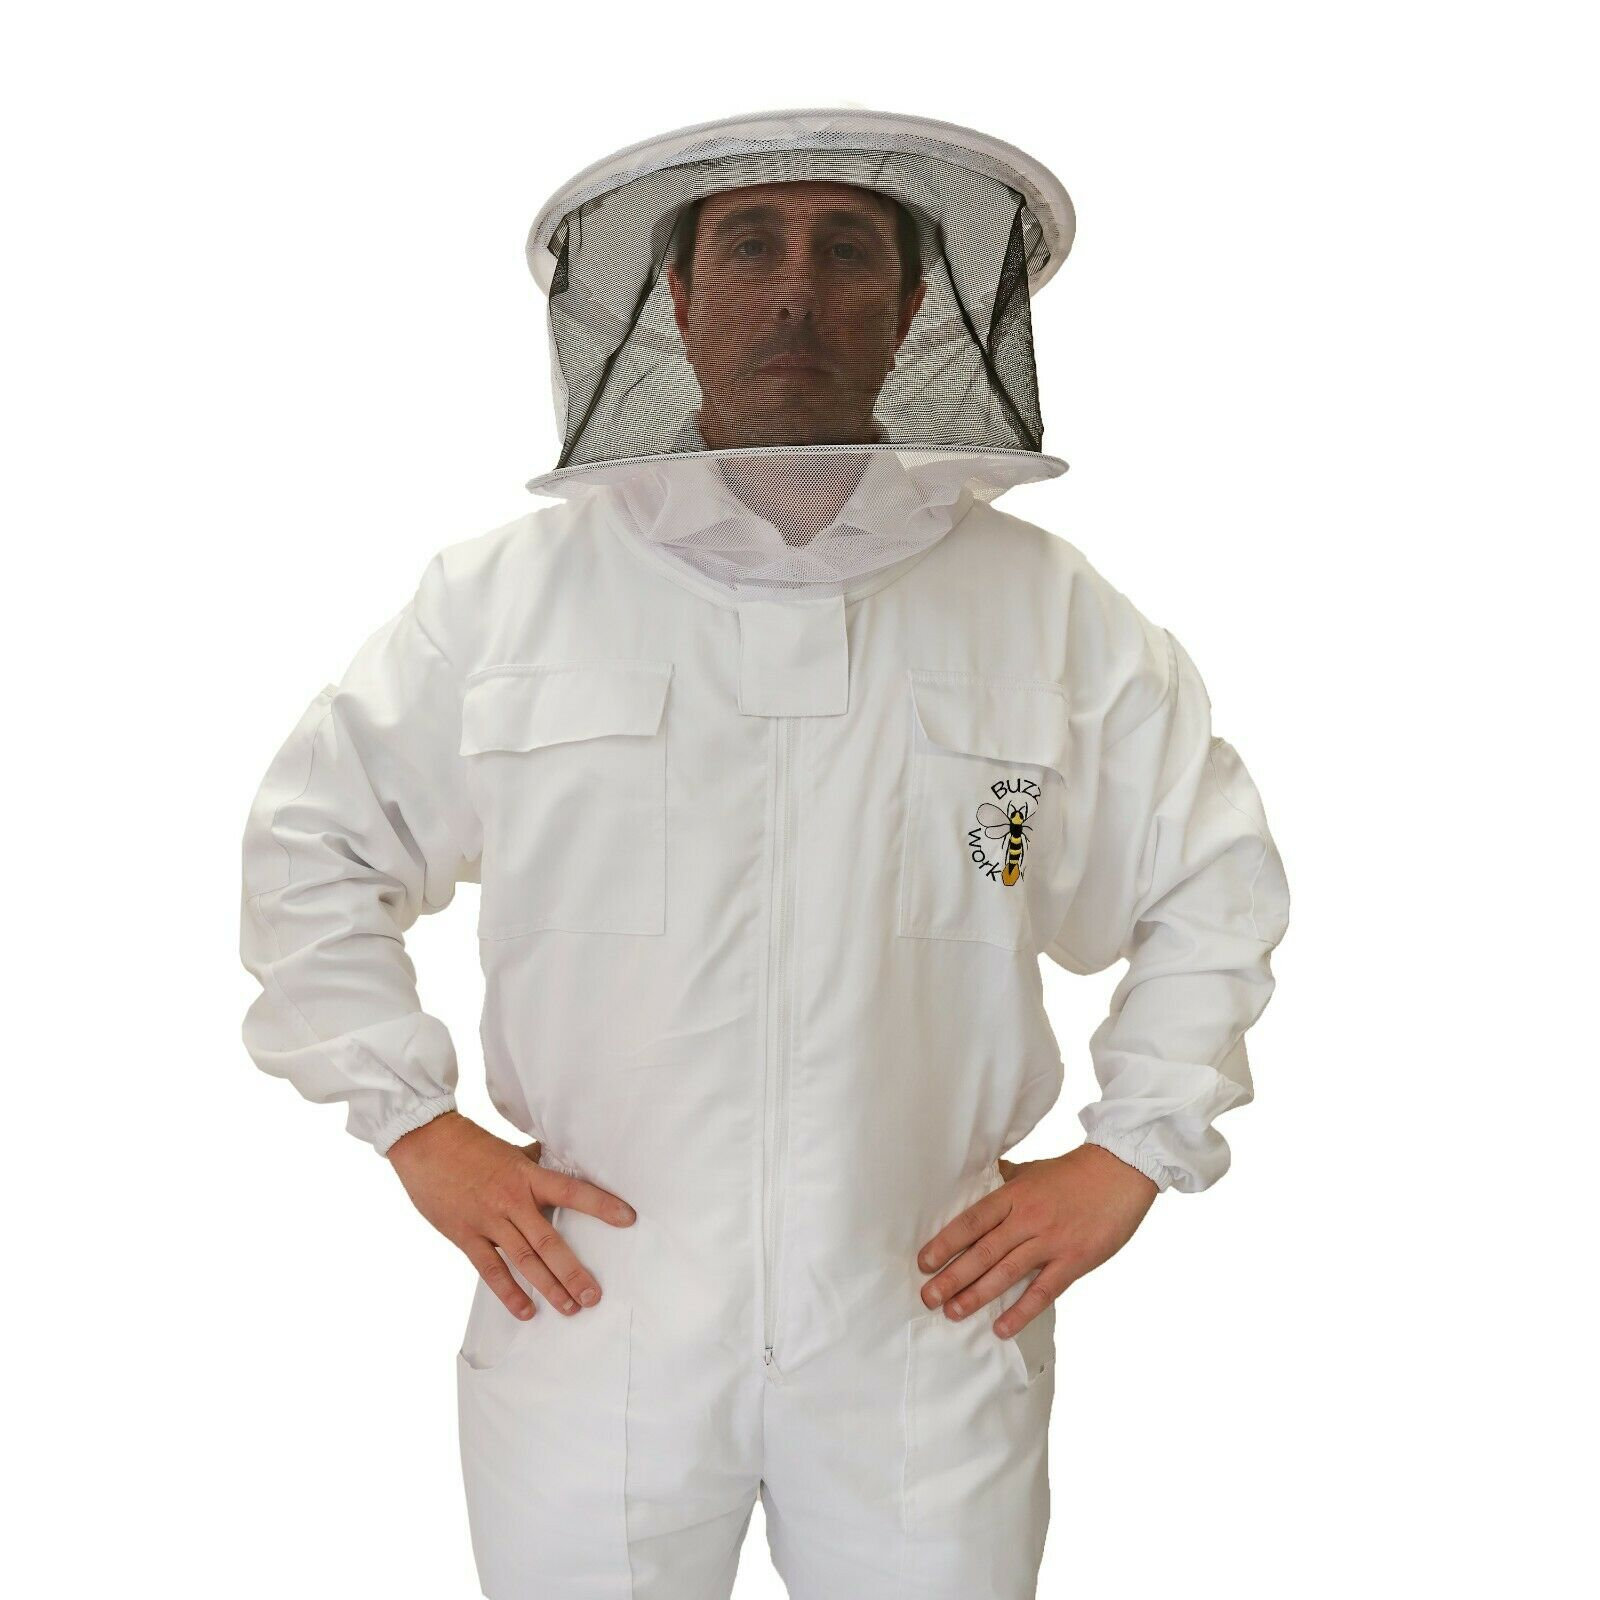 BUZZ Beekeeping bee suit - MEDIUM with round hat and twin hoop veil